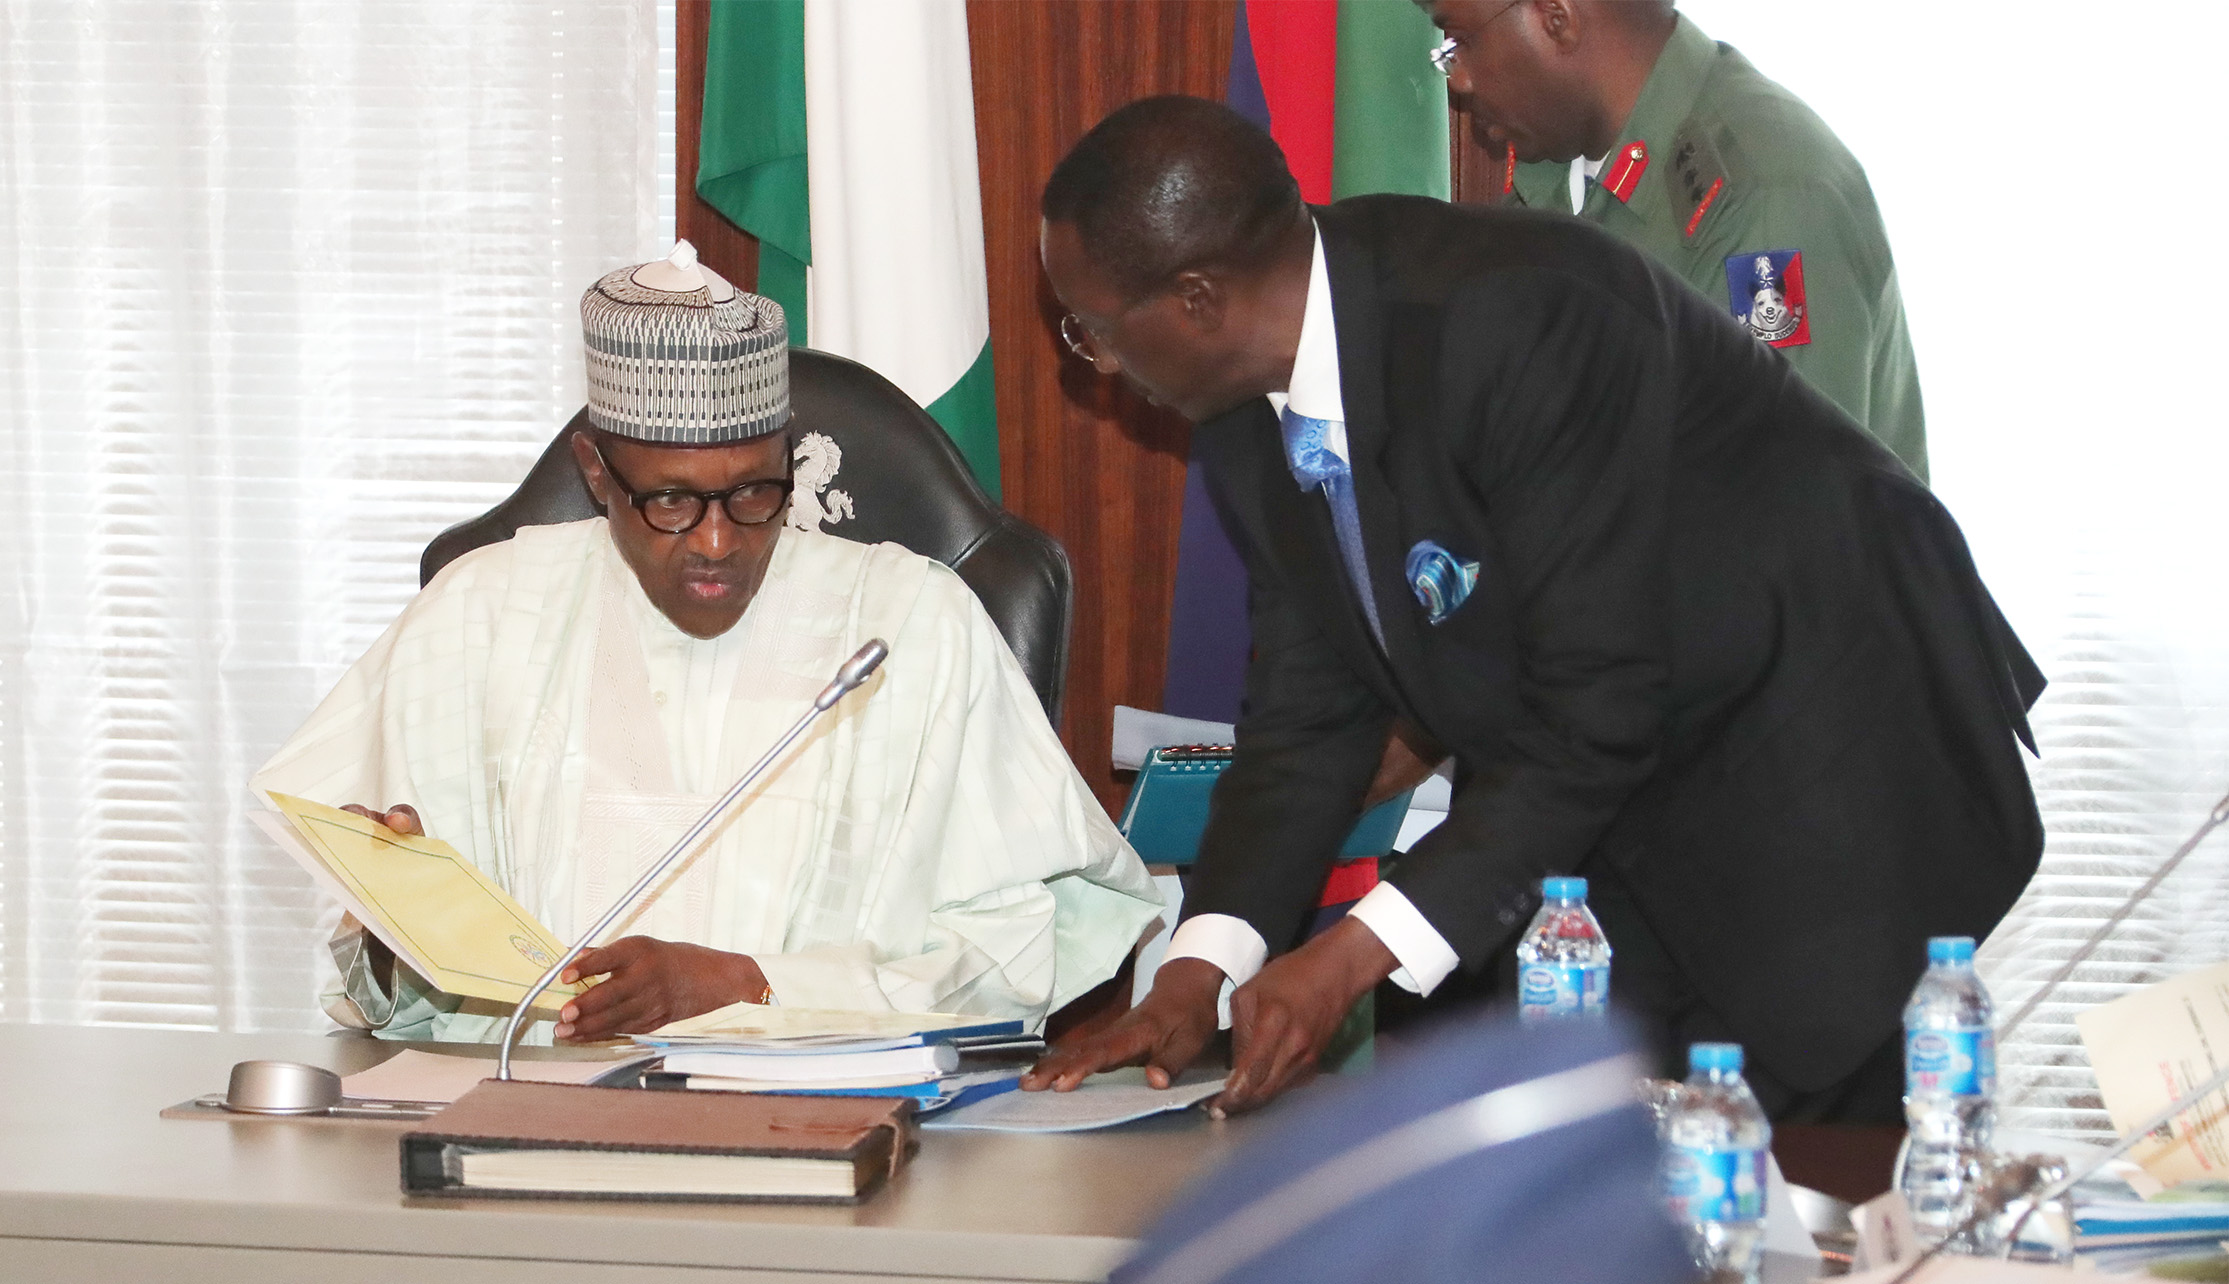 The Day in Pictures: Buhari in closed door meeting with security chiefs